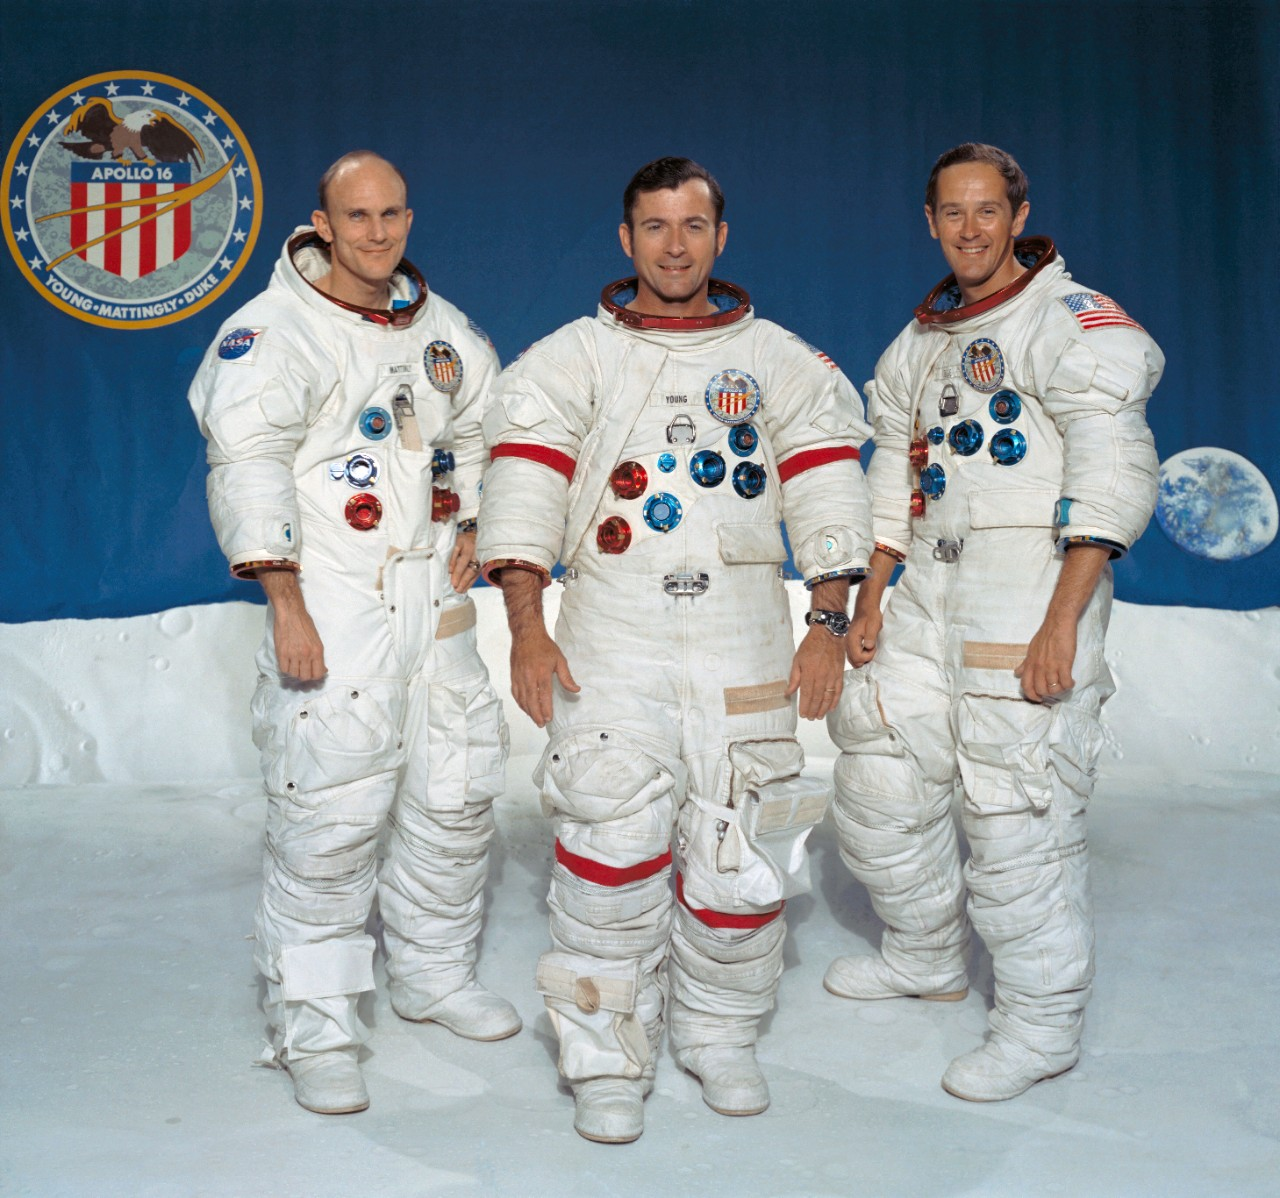 The Apollo 16 Crew